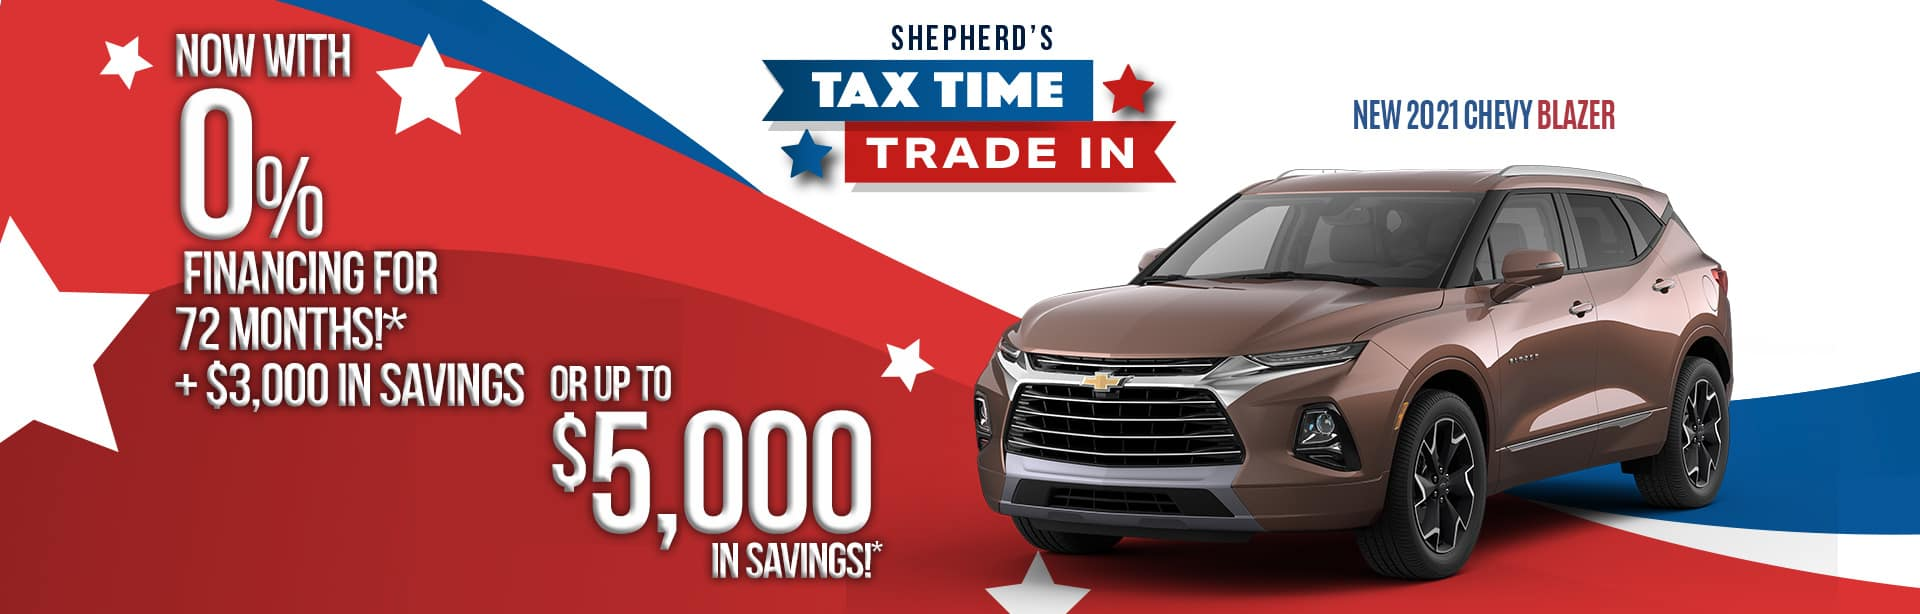 Best deal on a 2021 Chevy Blazer near North Manchester IN